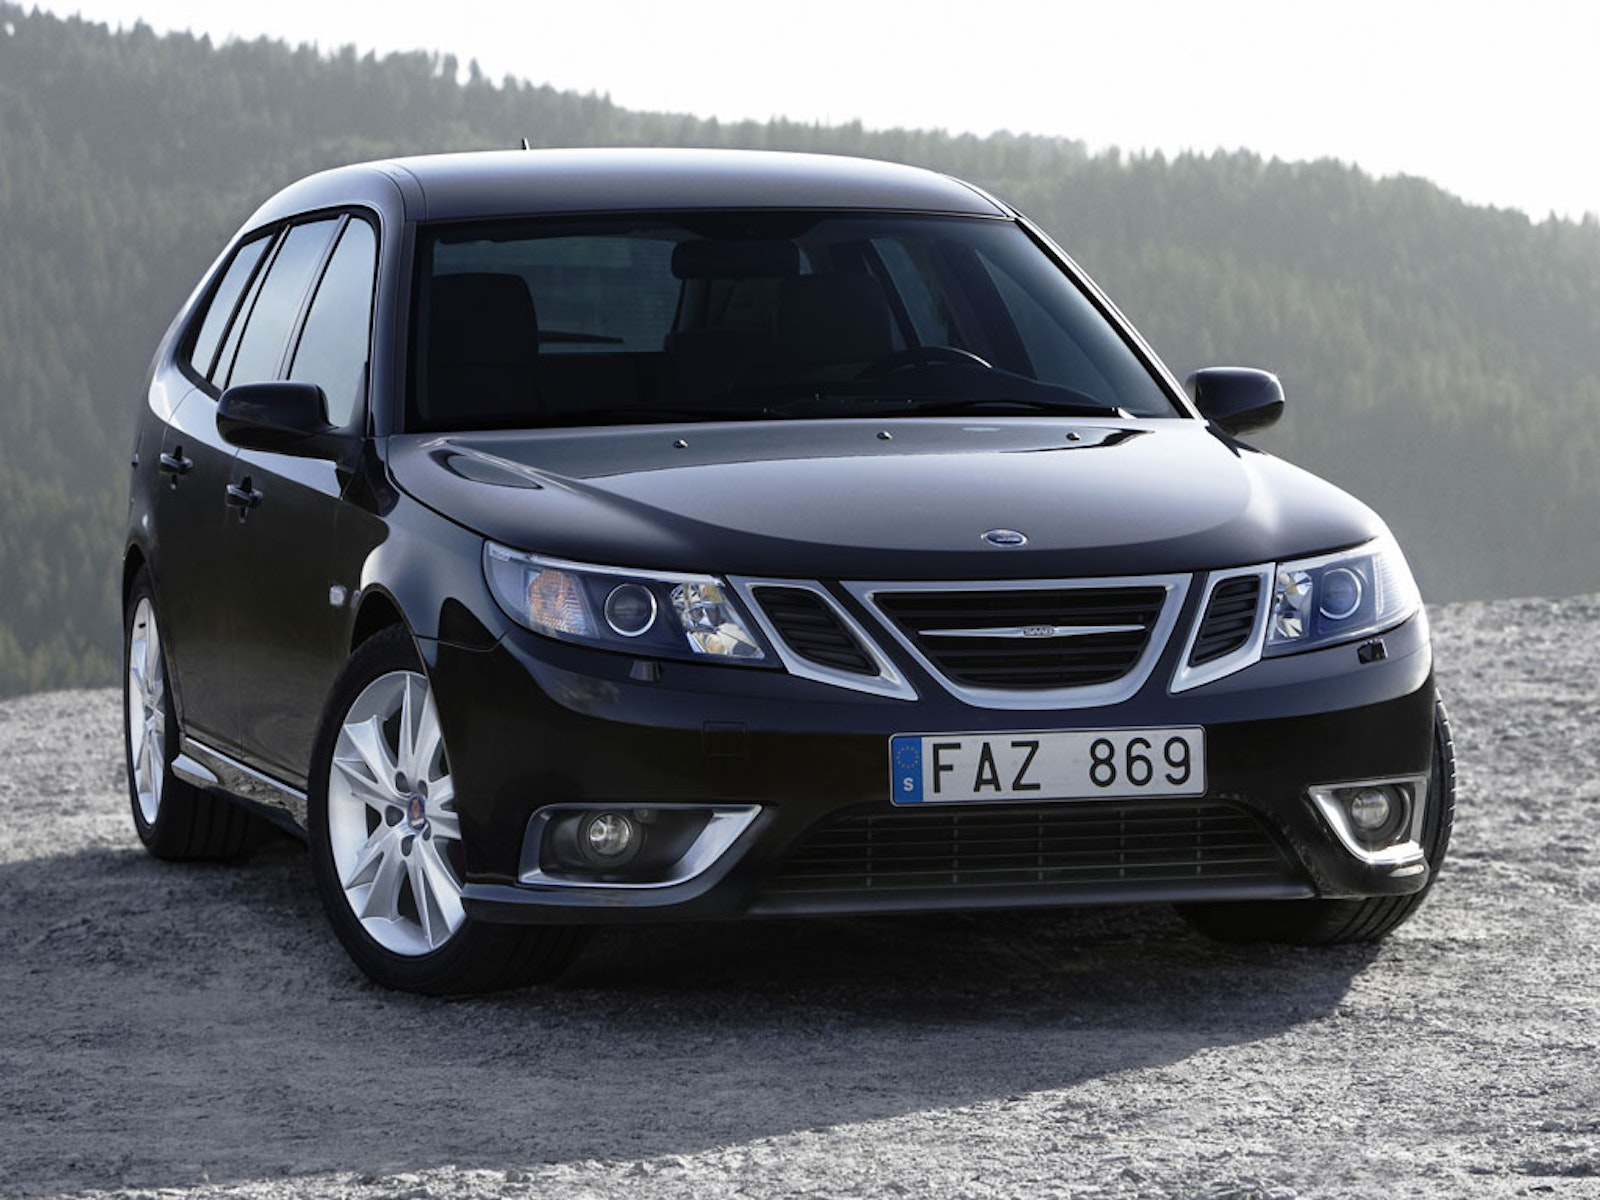 Car Manufacturer Saab Has Been Bought By National Electric Vehicle Sweden Nevs An International Consortium Formed Anese Swedish And Chinese